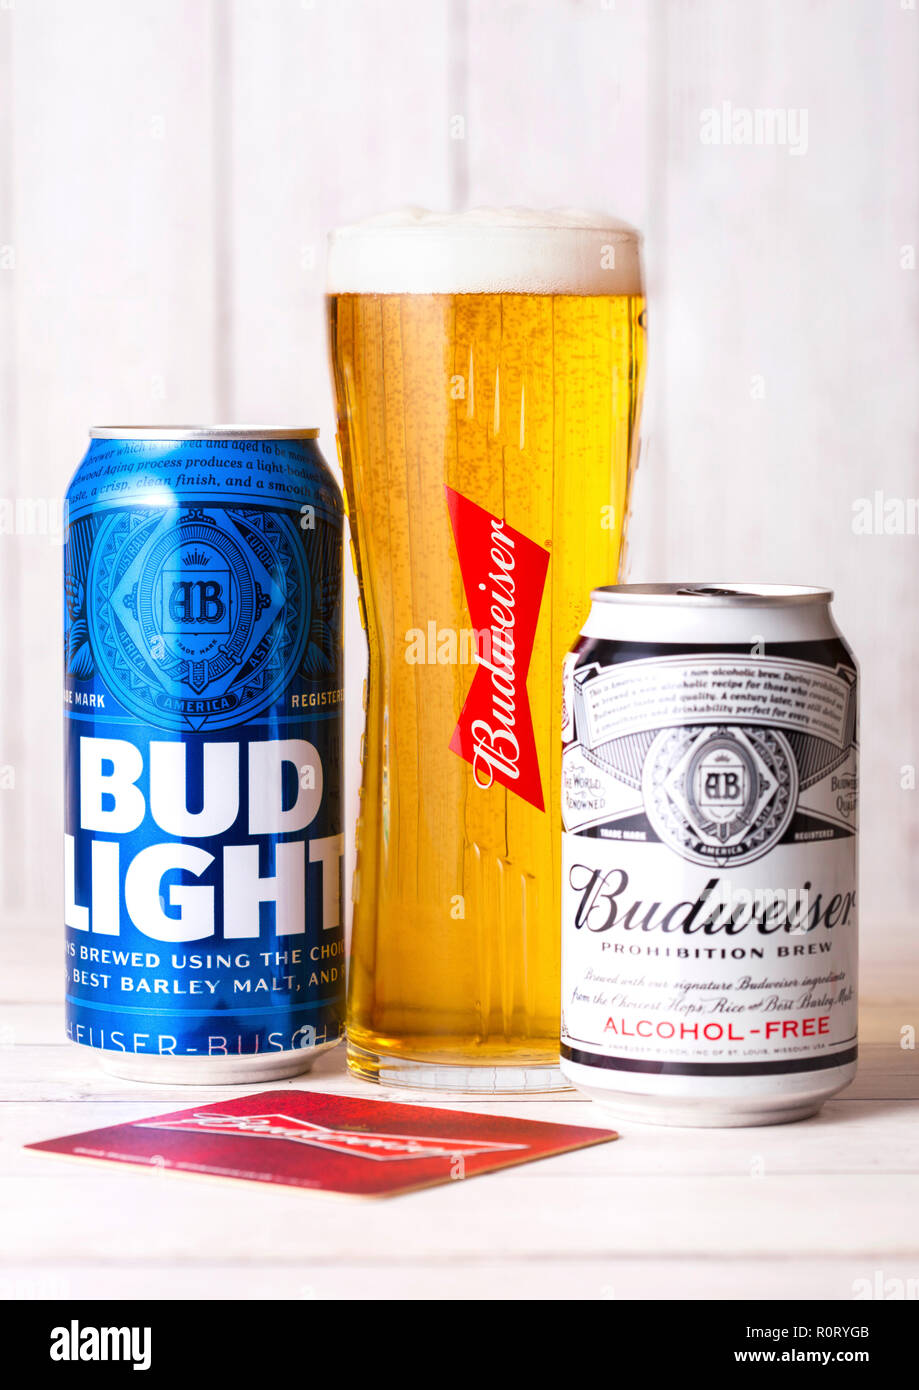 Budweiser Glasses Uk